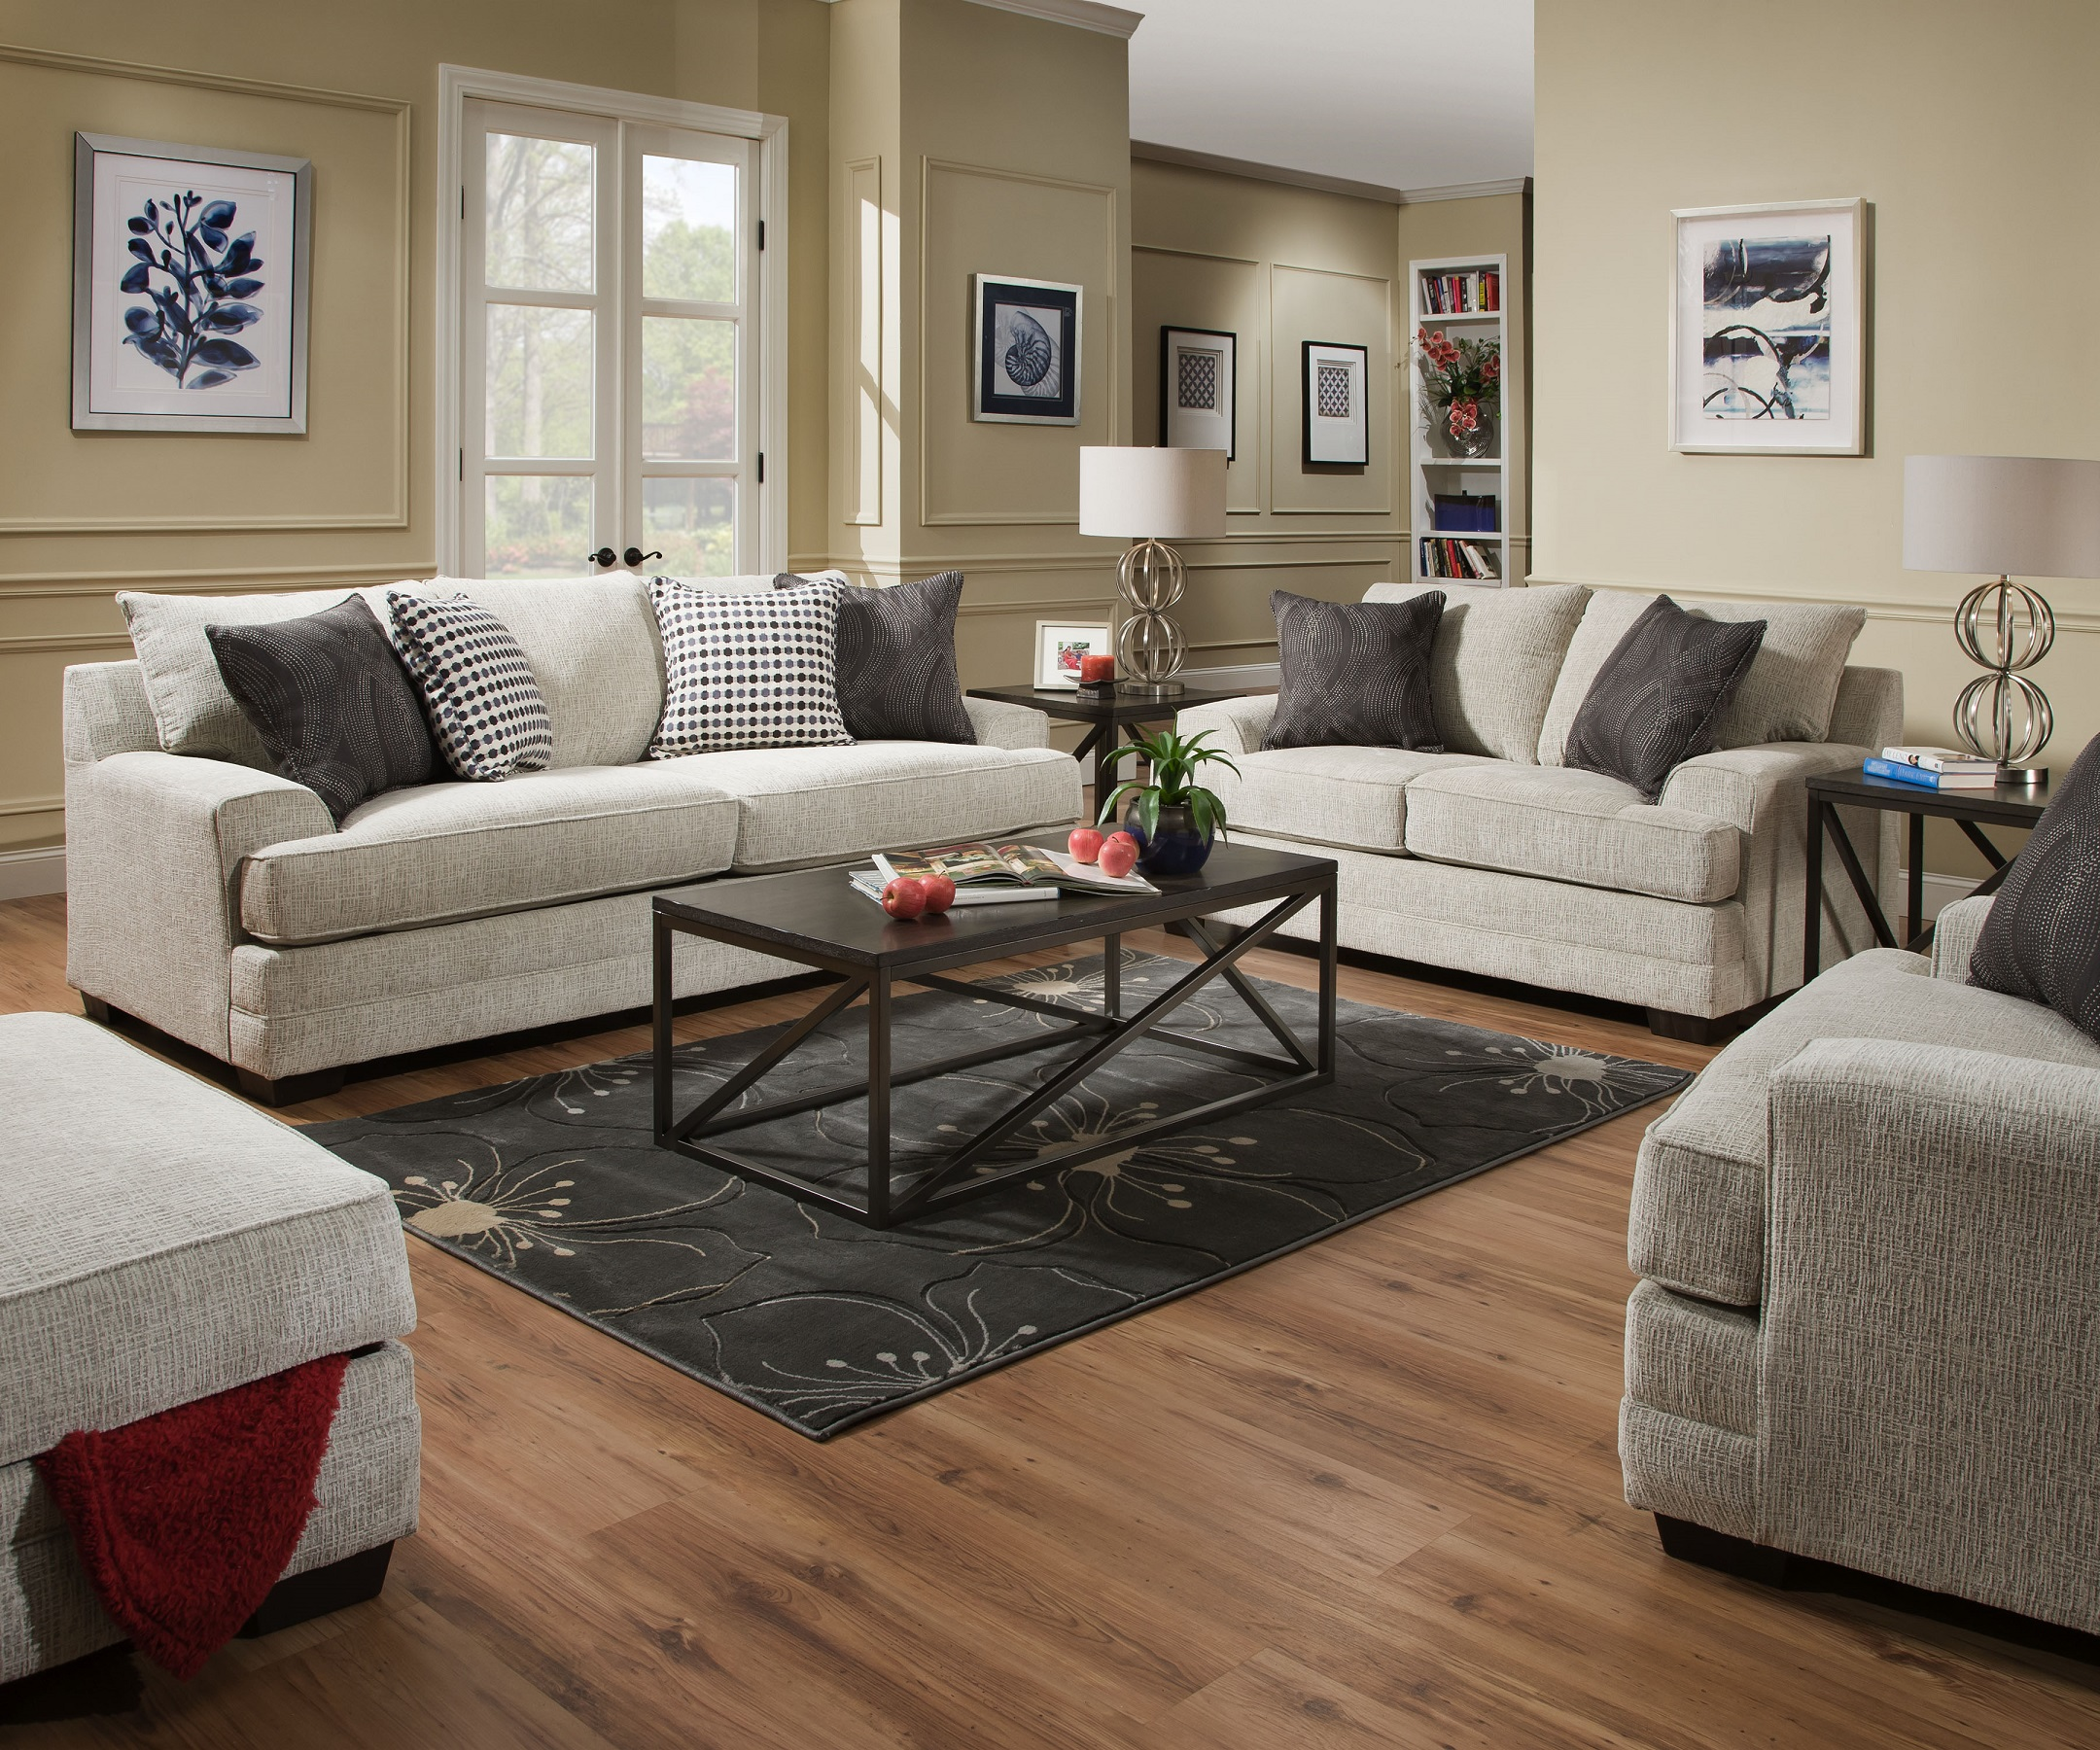 Dillon 6548 Beautyrest Pocketed Coil Seating Sofa U0026 Loveseat